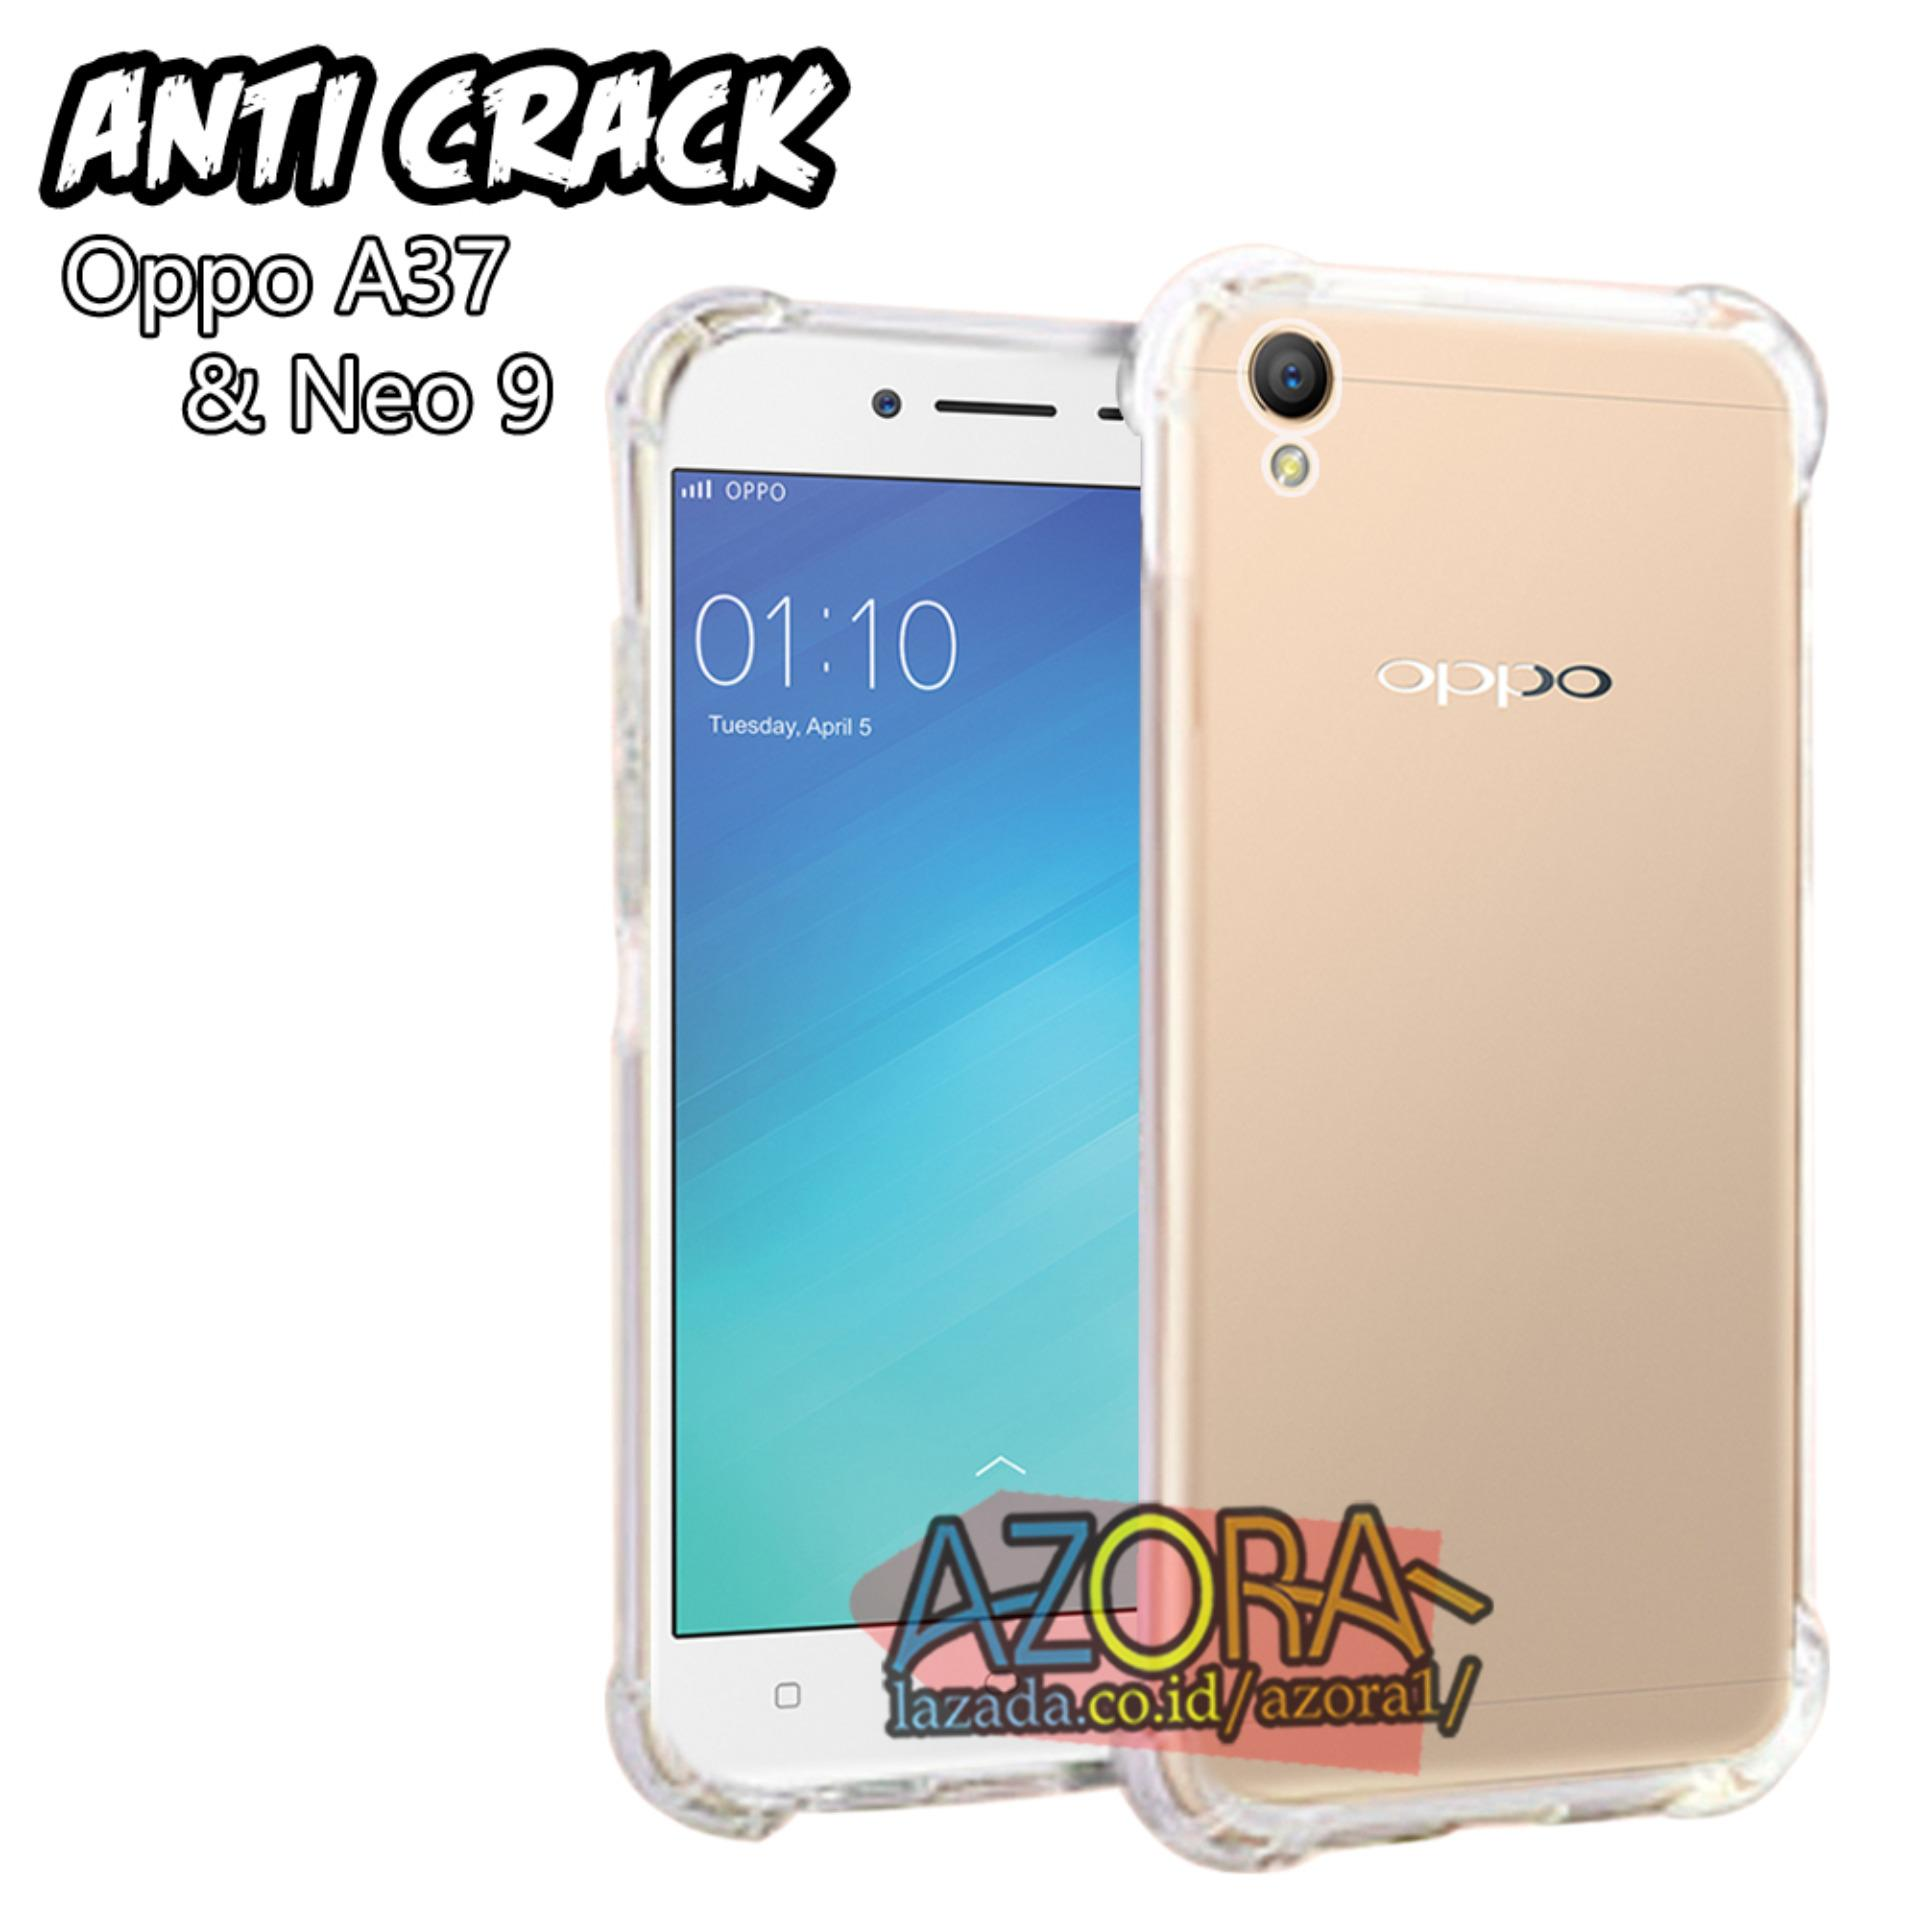 Cek Harga Baru Case Anti Crack Oppo A39 A57 Ultra Thin Shock Fuze F1 S A59 Putih A37 Neo 9 Jelly Silikon Shockproof Softcase